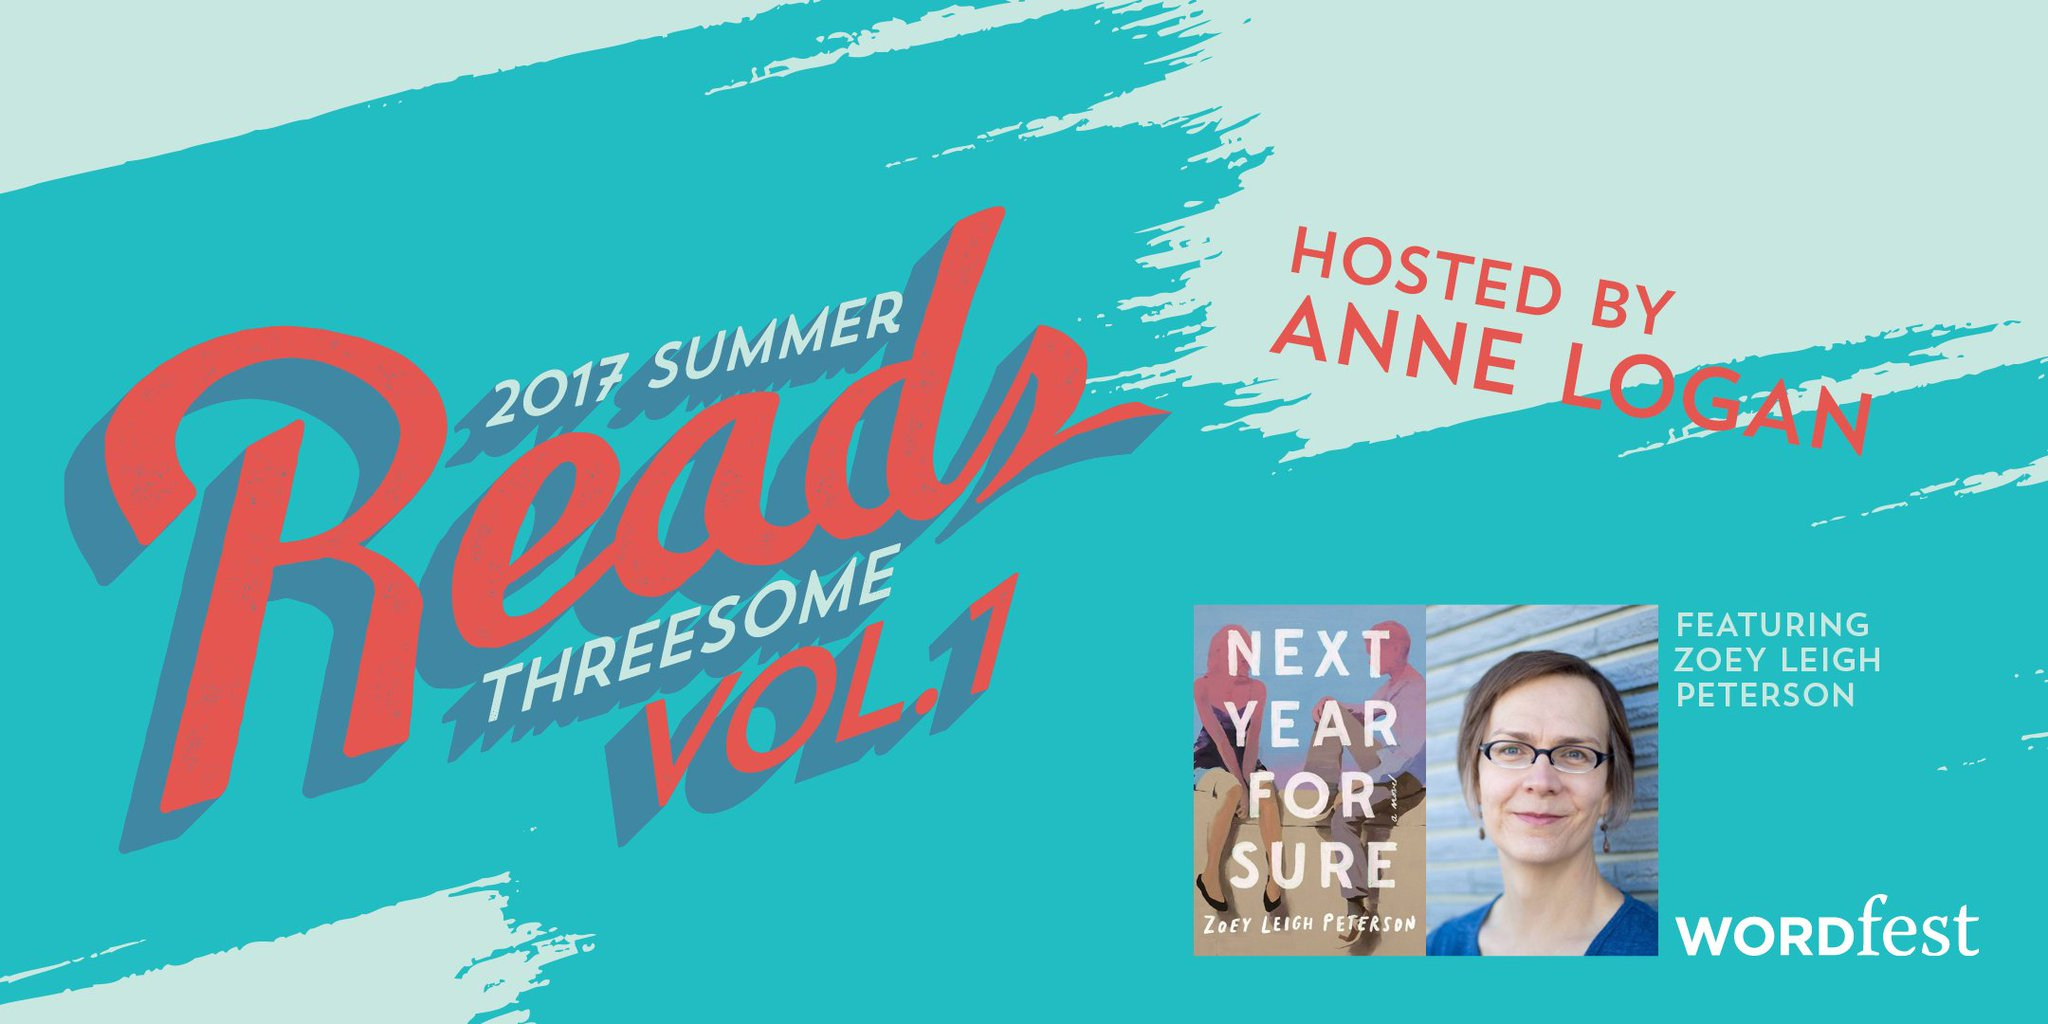 """Ever been caught in a love triangle? Explore love in """"Next Year For Sure"""" at our Summer Reads Threesome book club https://t.co/CoxUbtqENp https://t.co/eZm30qVJ1S"""